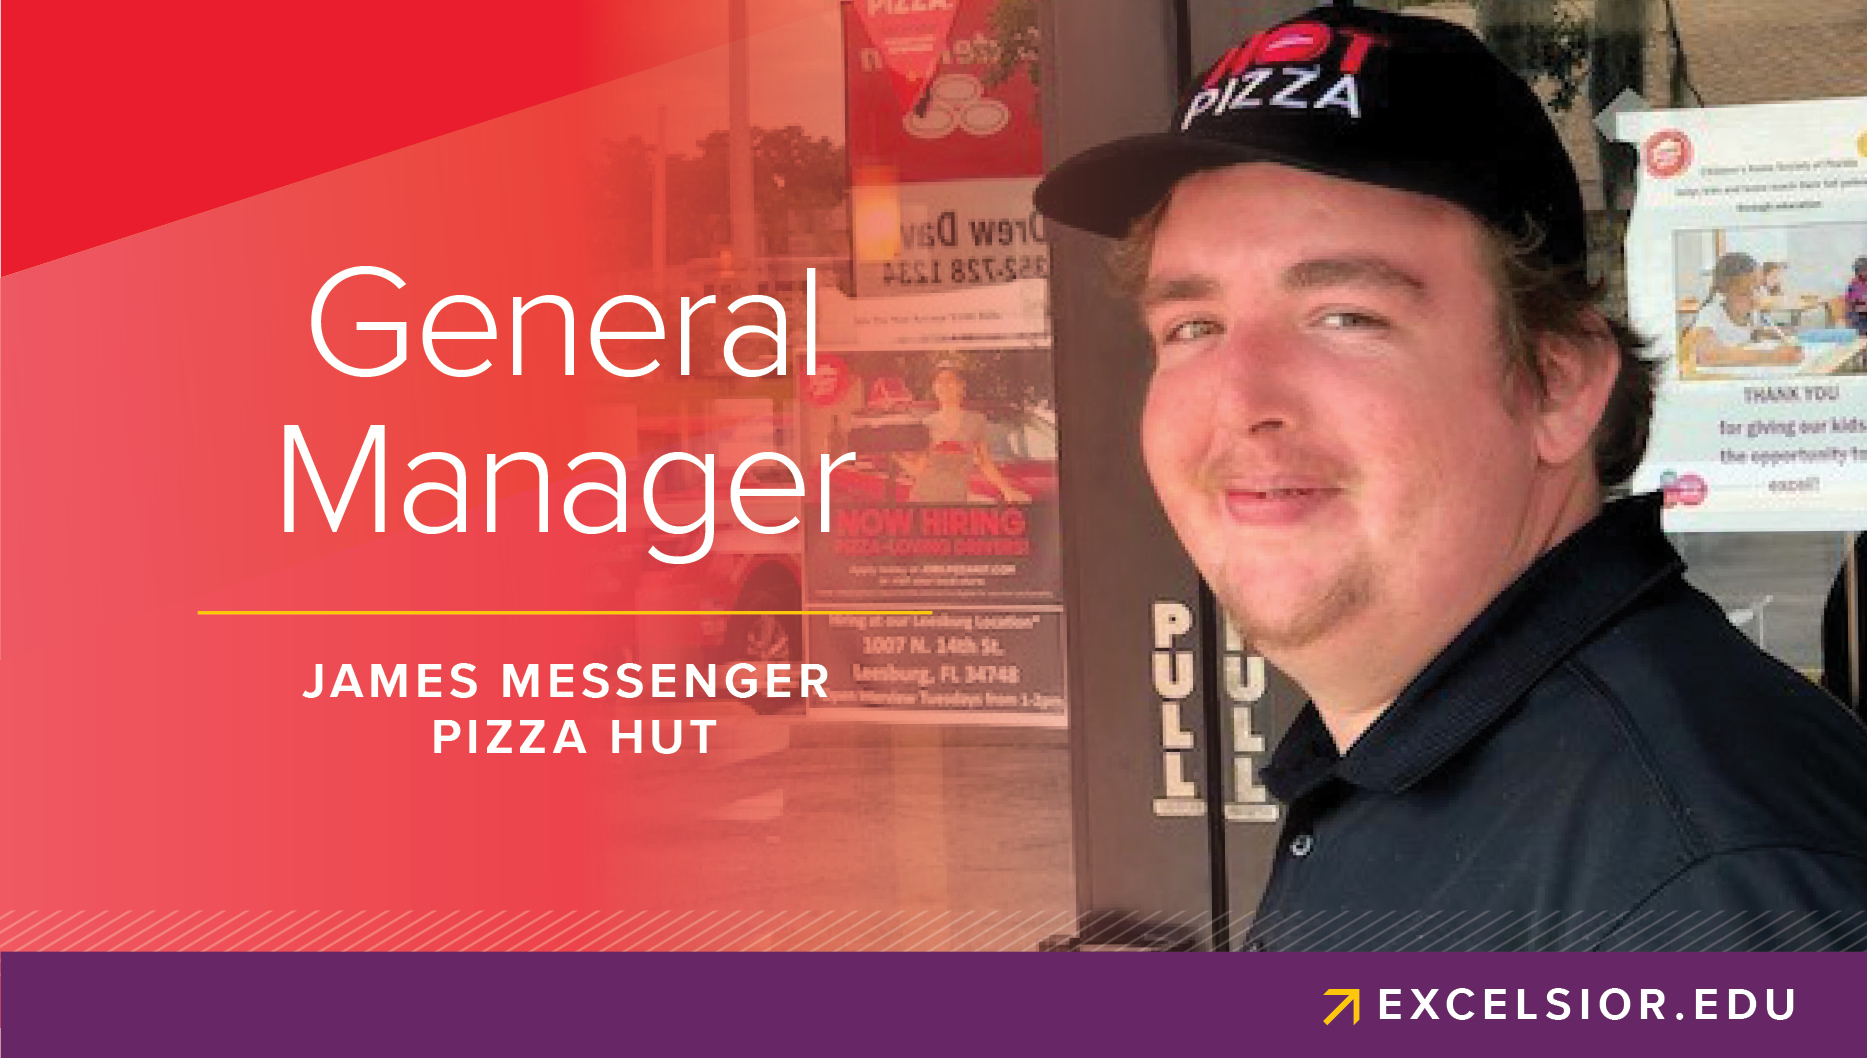 Promotional Image of James Messenger, Pizza Hut